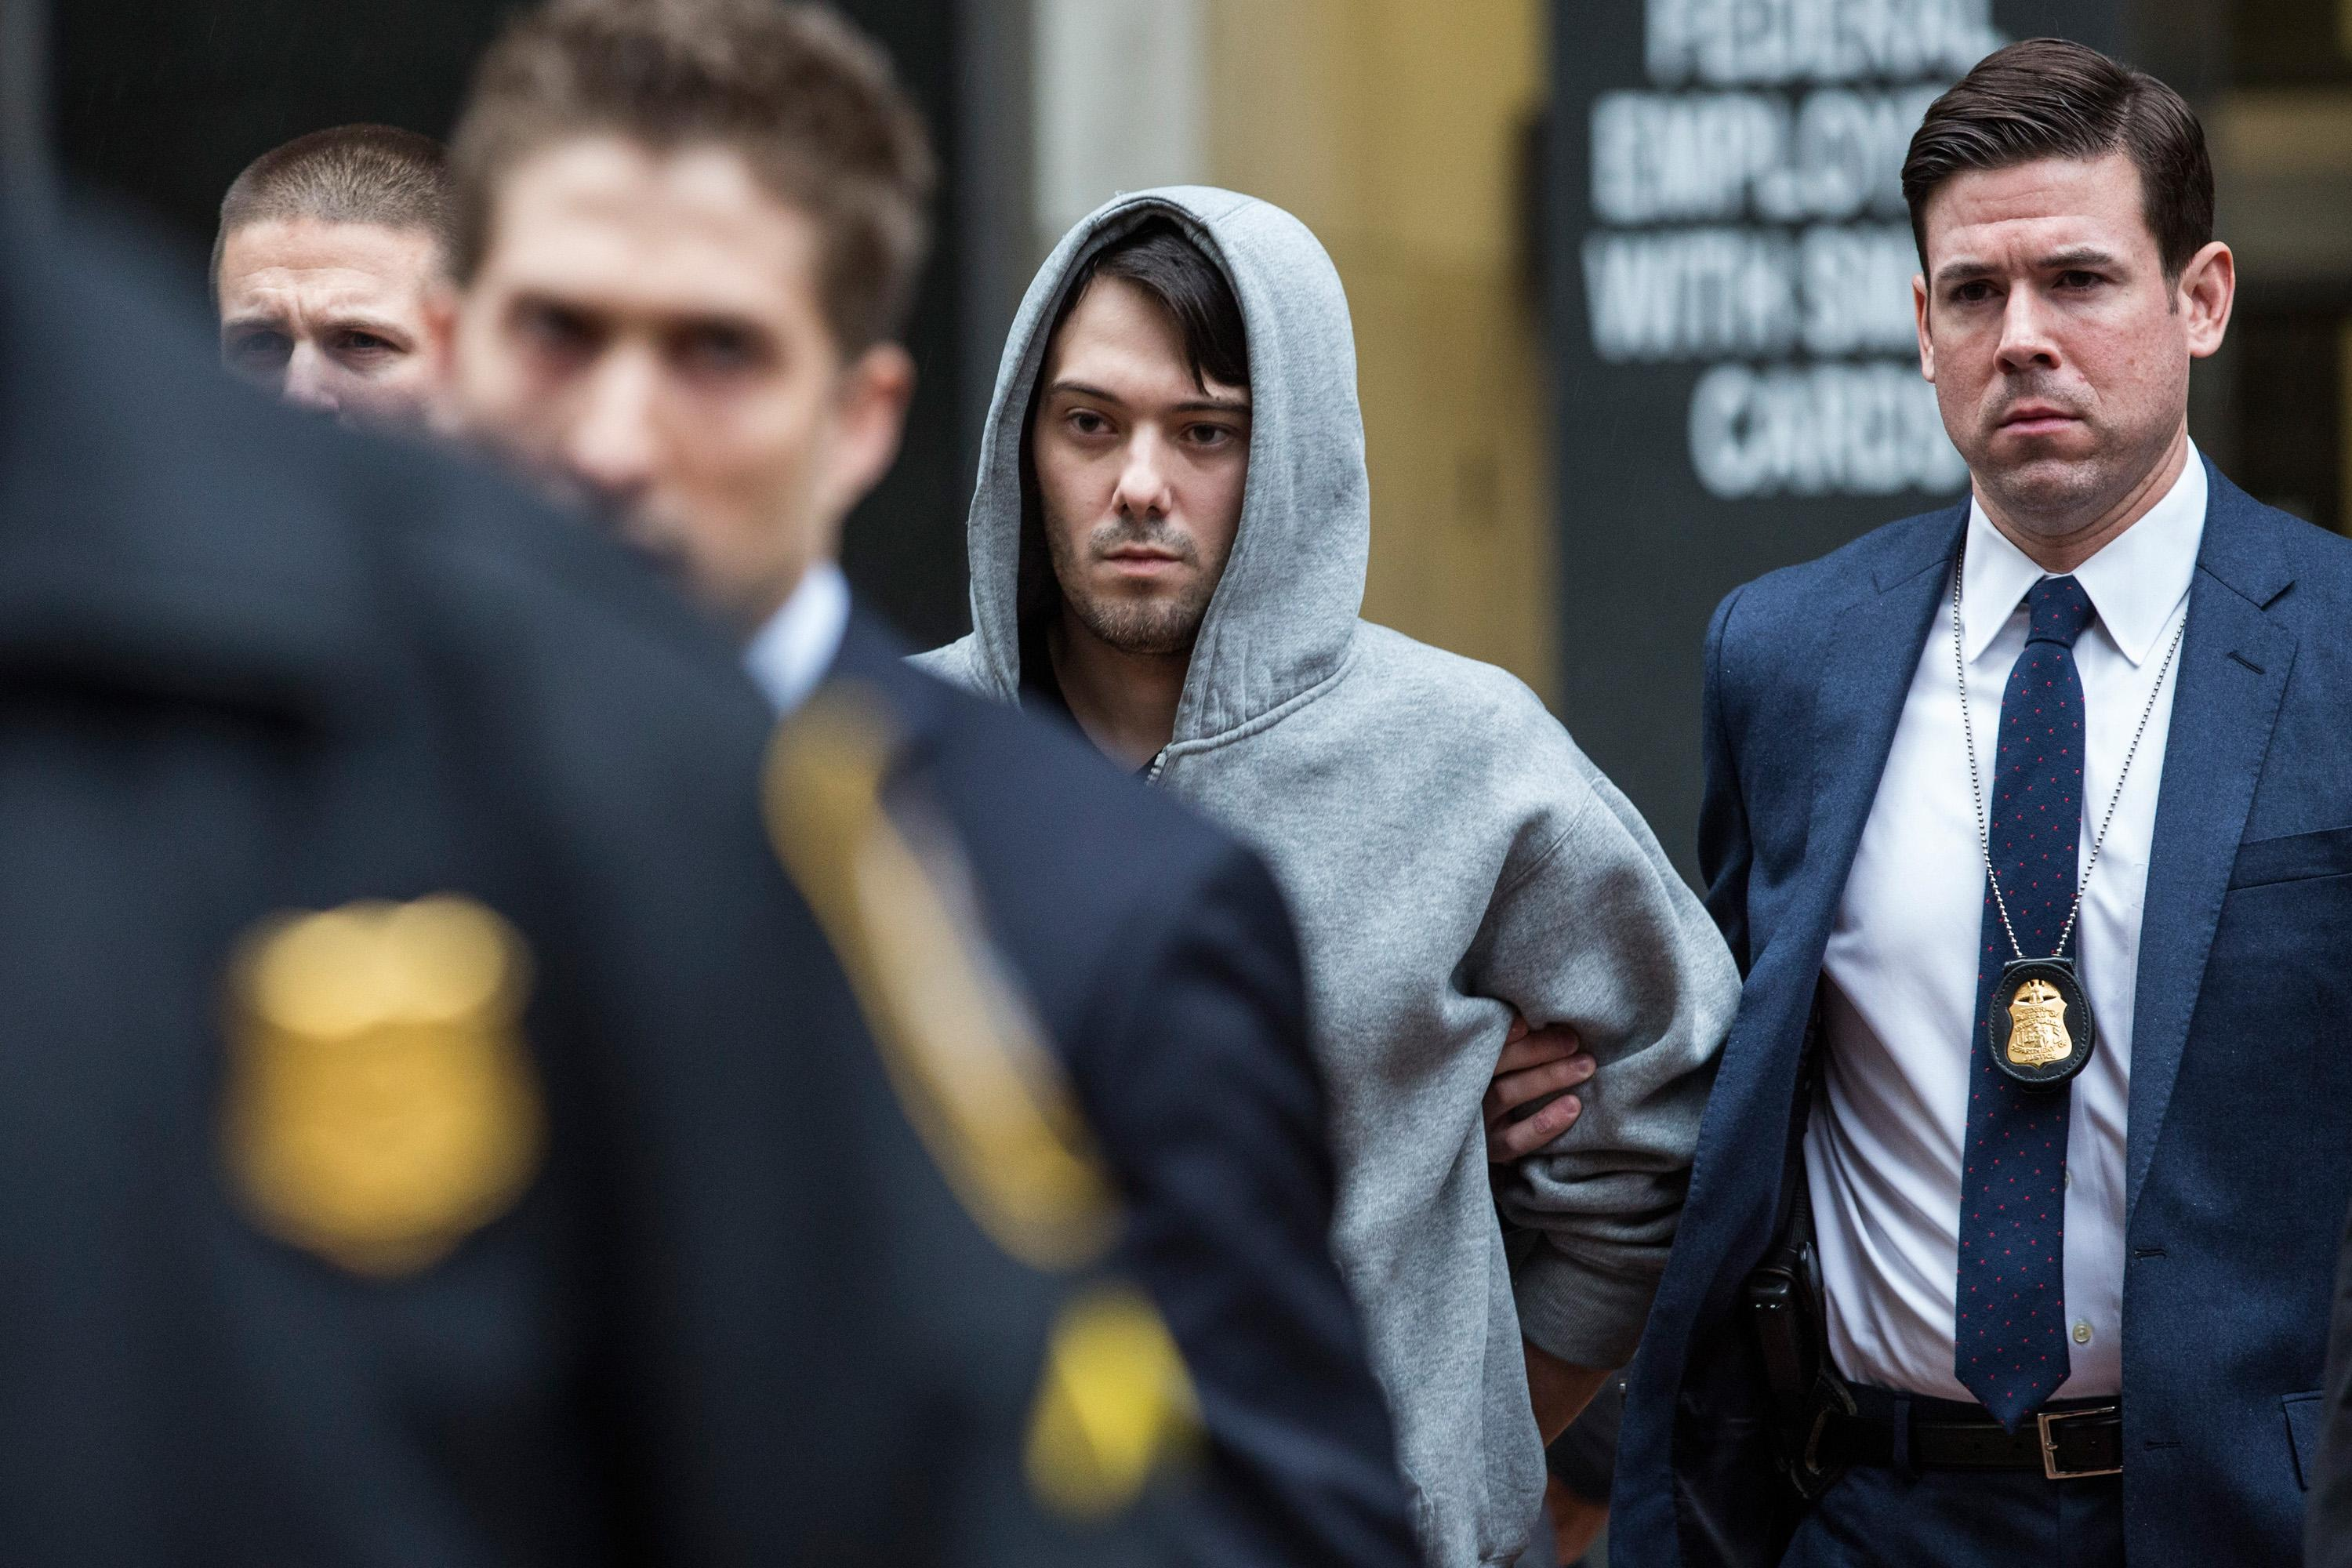 'Pharma bro' Martin Shkreli heads into fraud trial